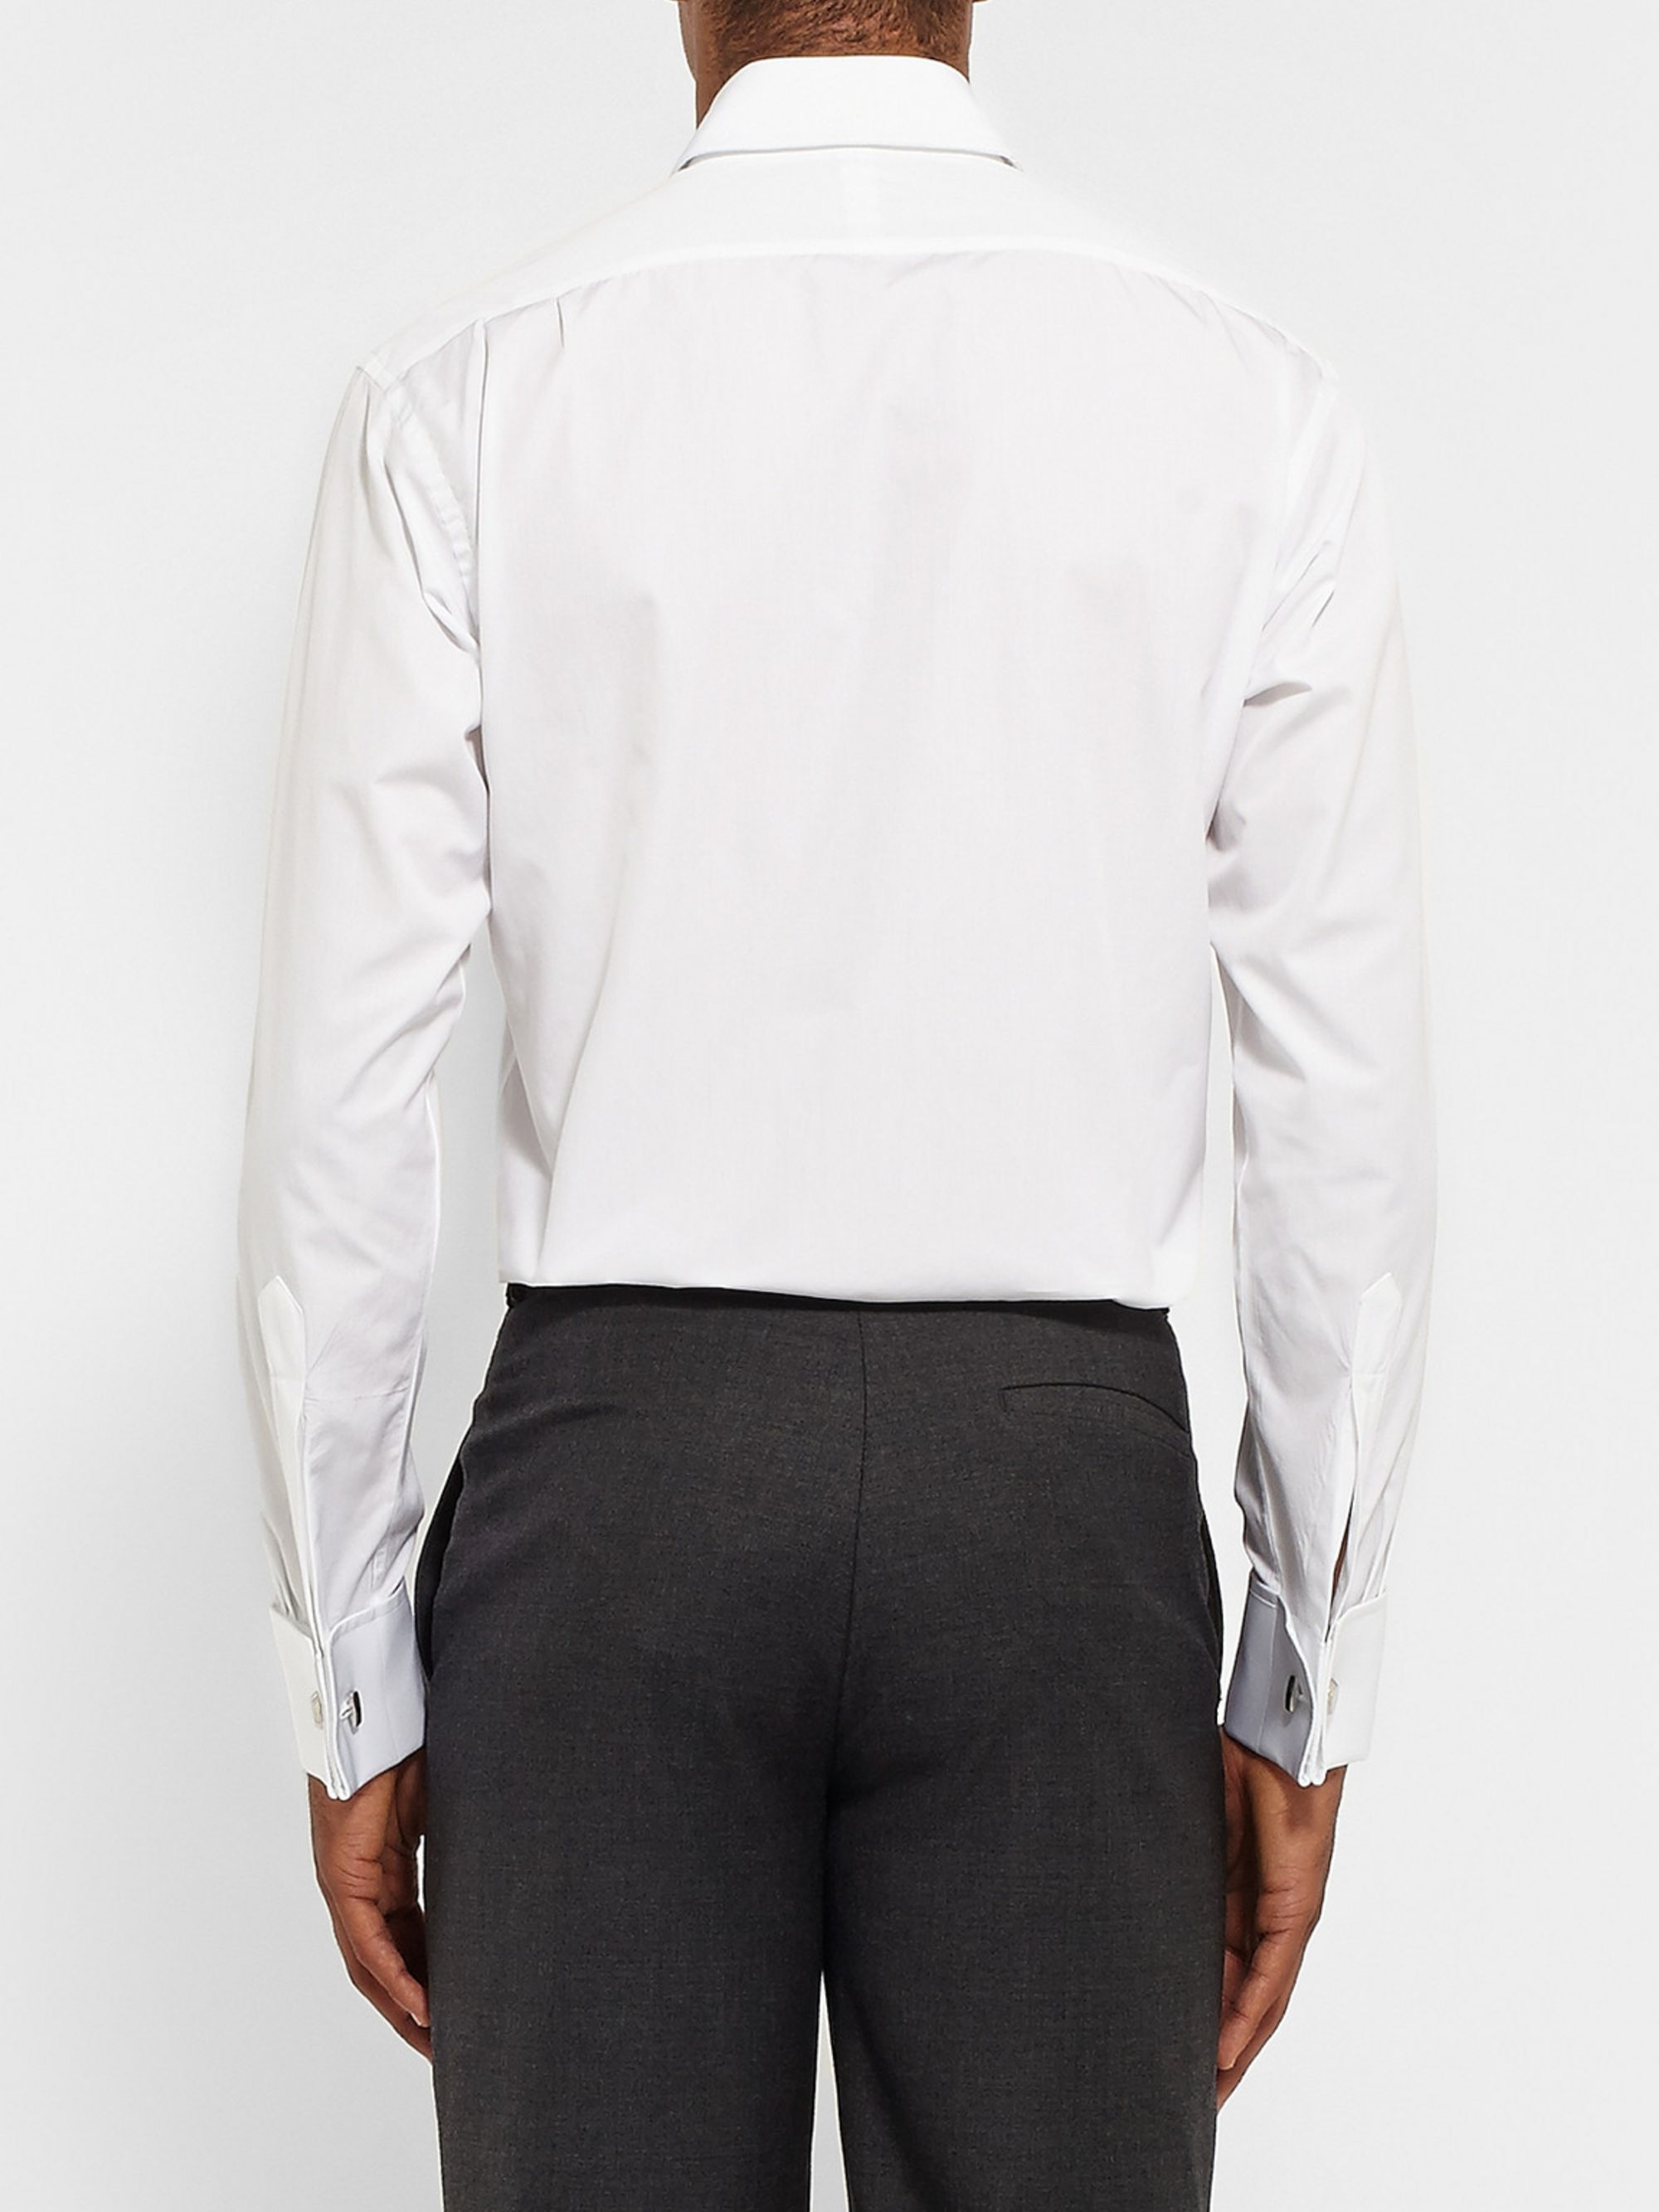 Emma Willis White Double-Cuff Cotton Shirt